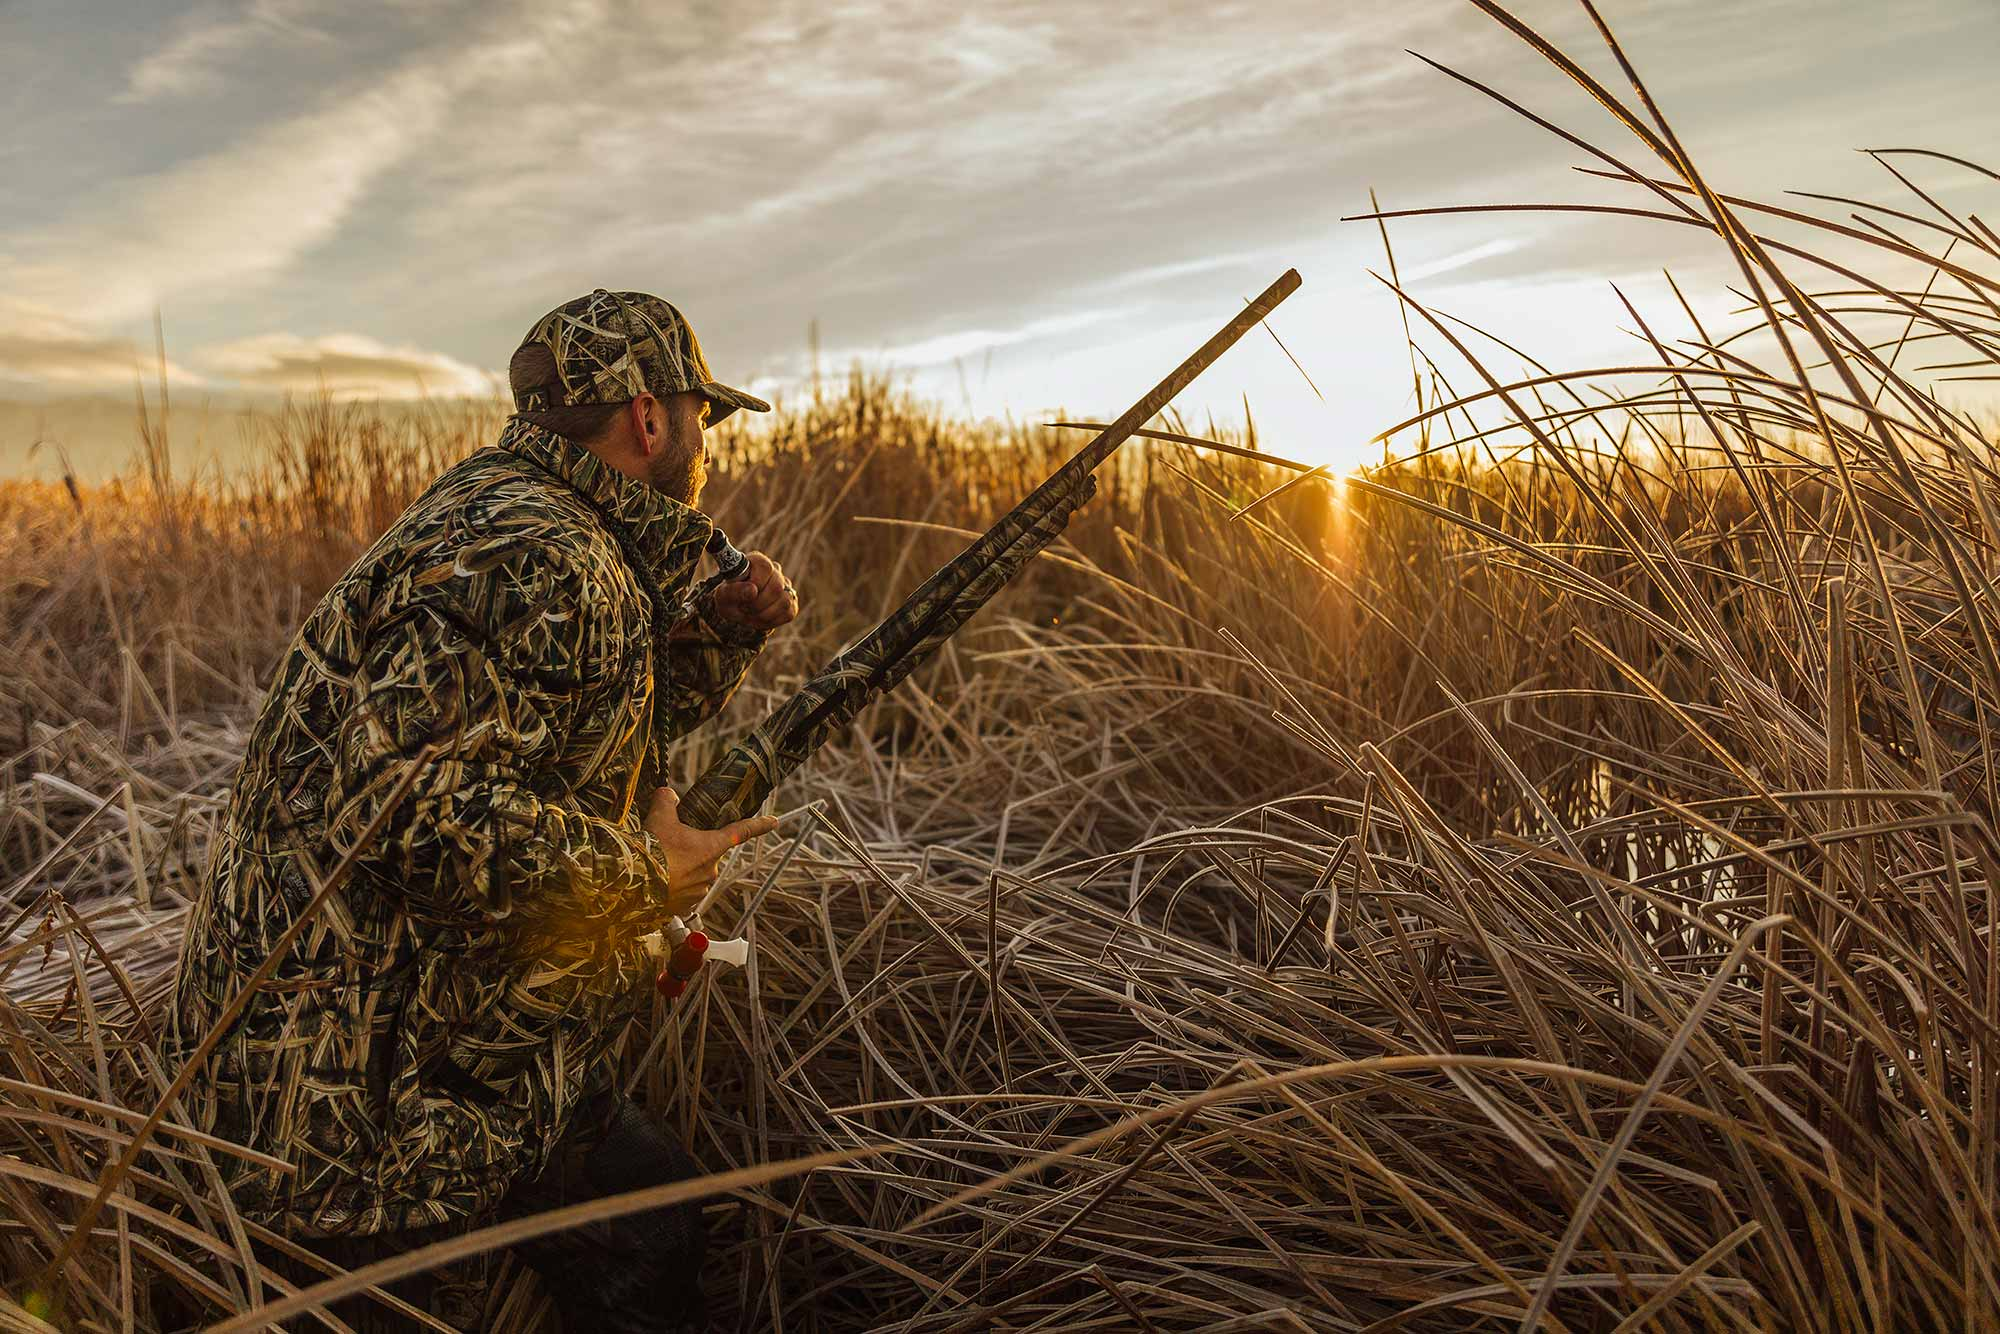 A late-season hunter hides in frosted cattails, waiting for ducks at sunrise.